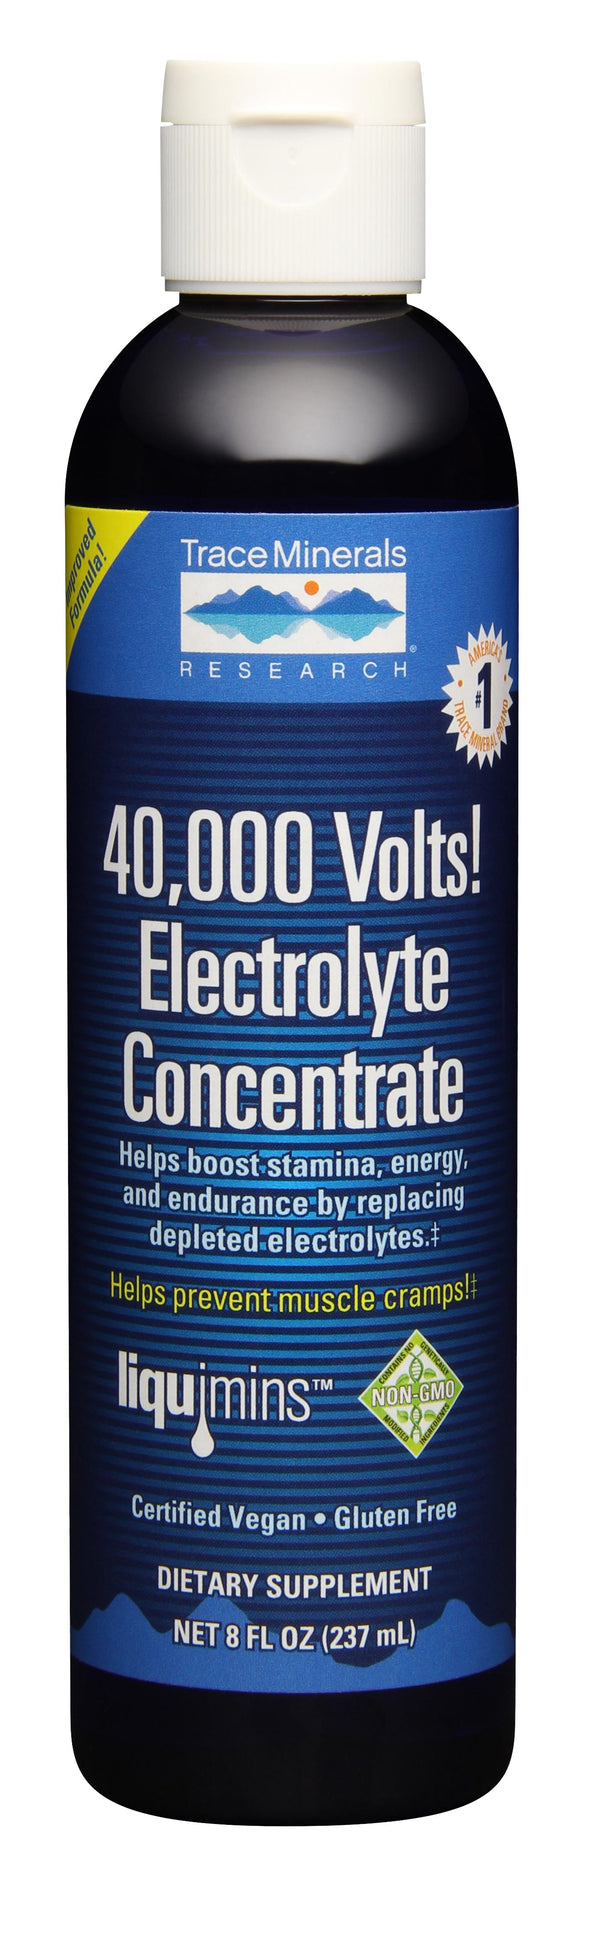 Trace Minerals Research 40,000 Volts! Electrolyte Concentrate